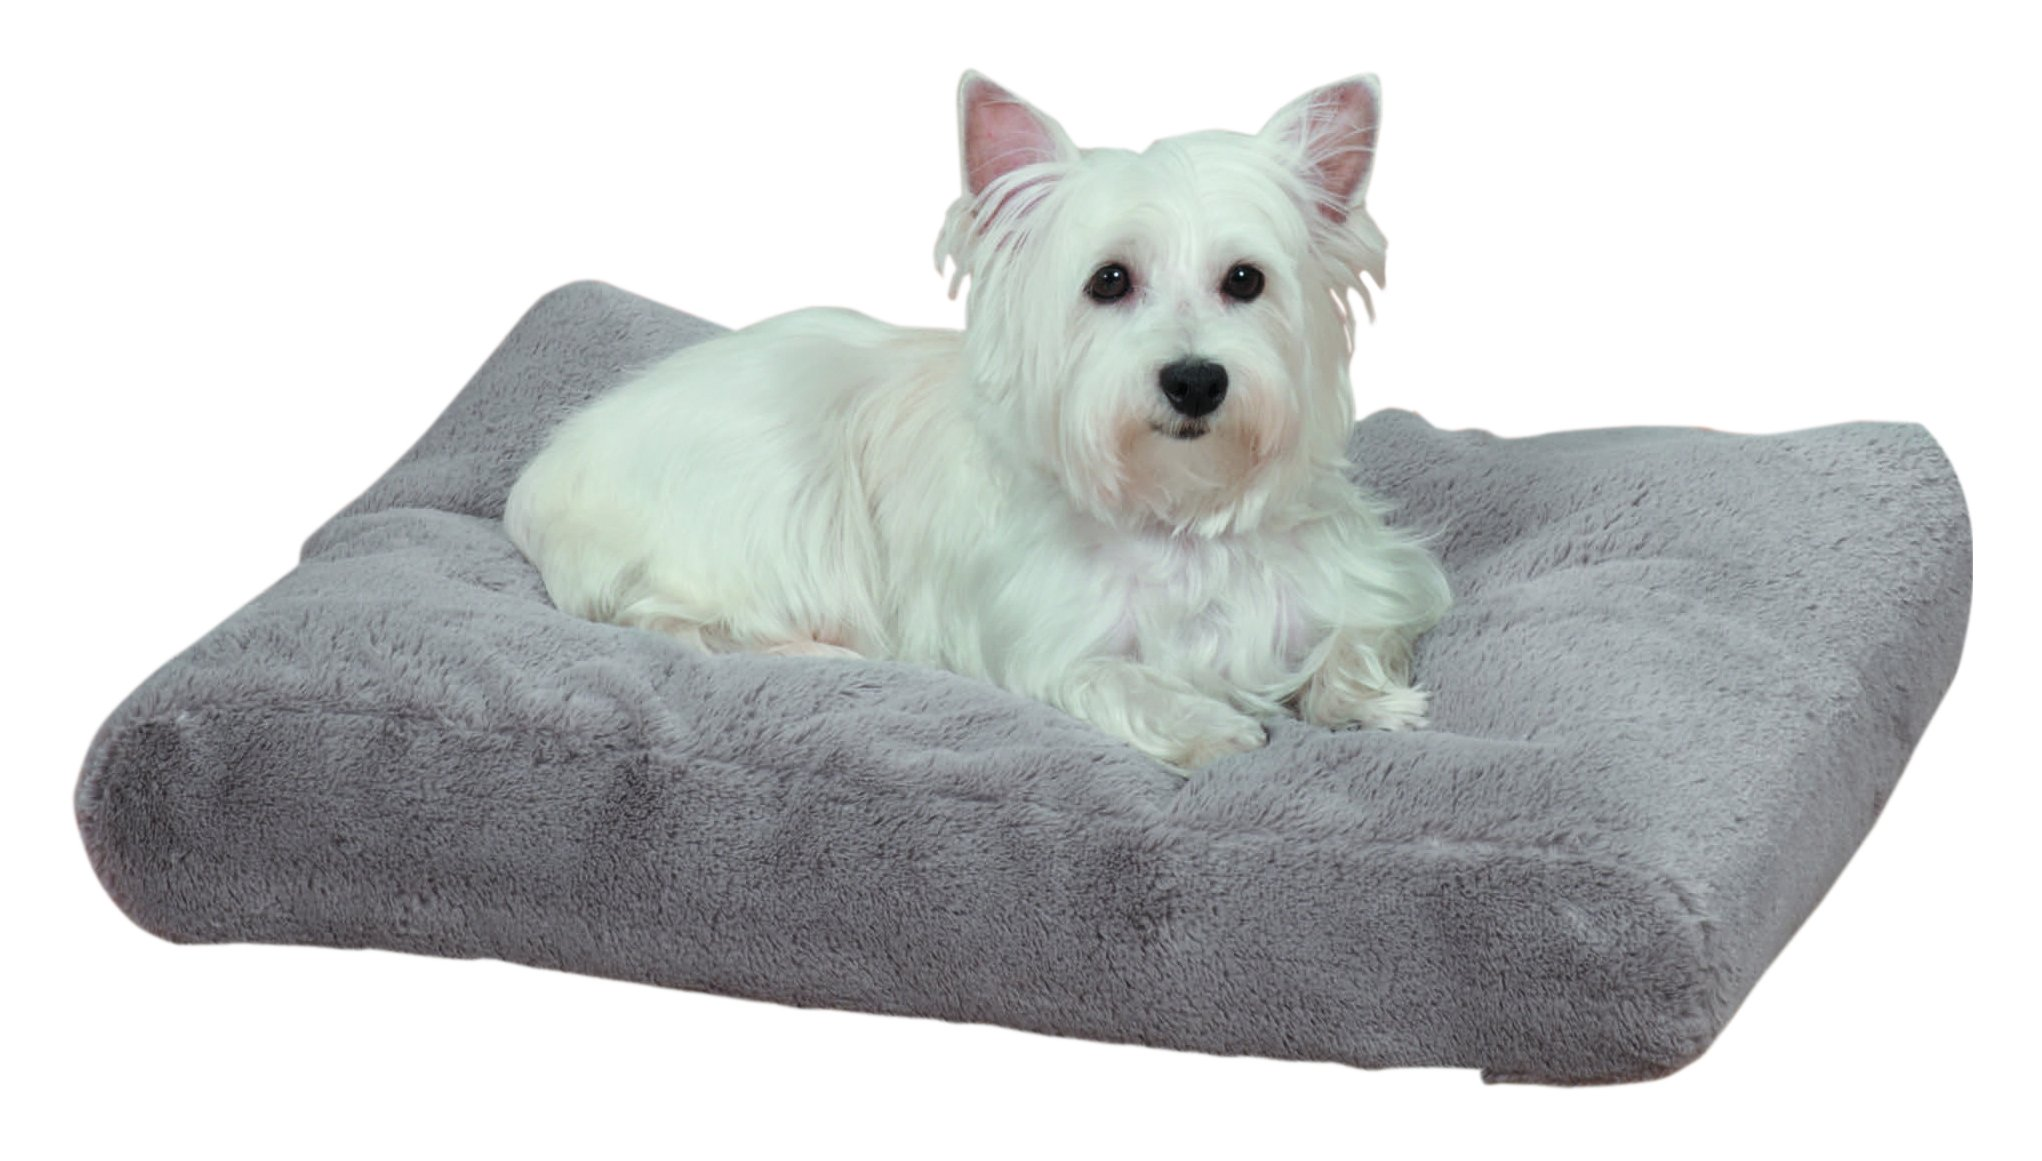 Slumber Pet ThermaPet Burrow Beds-Innovative, Lofty, and Comfortable Warming Beds for Dogs and Cats by ThermaPet